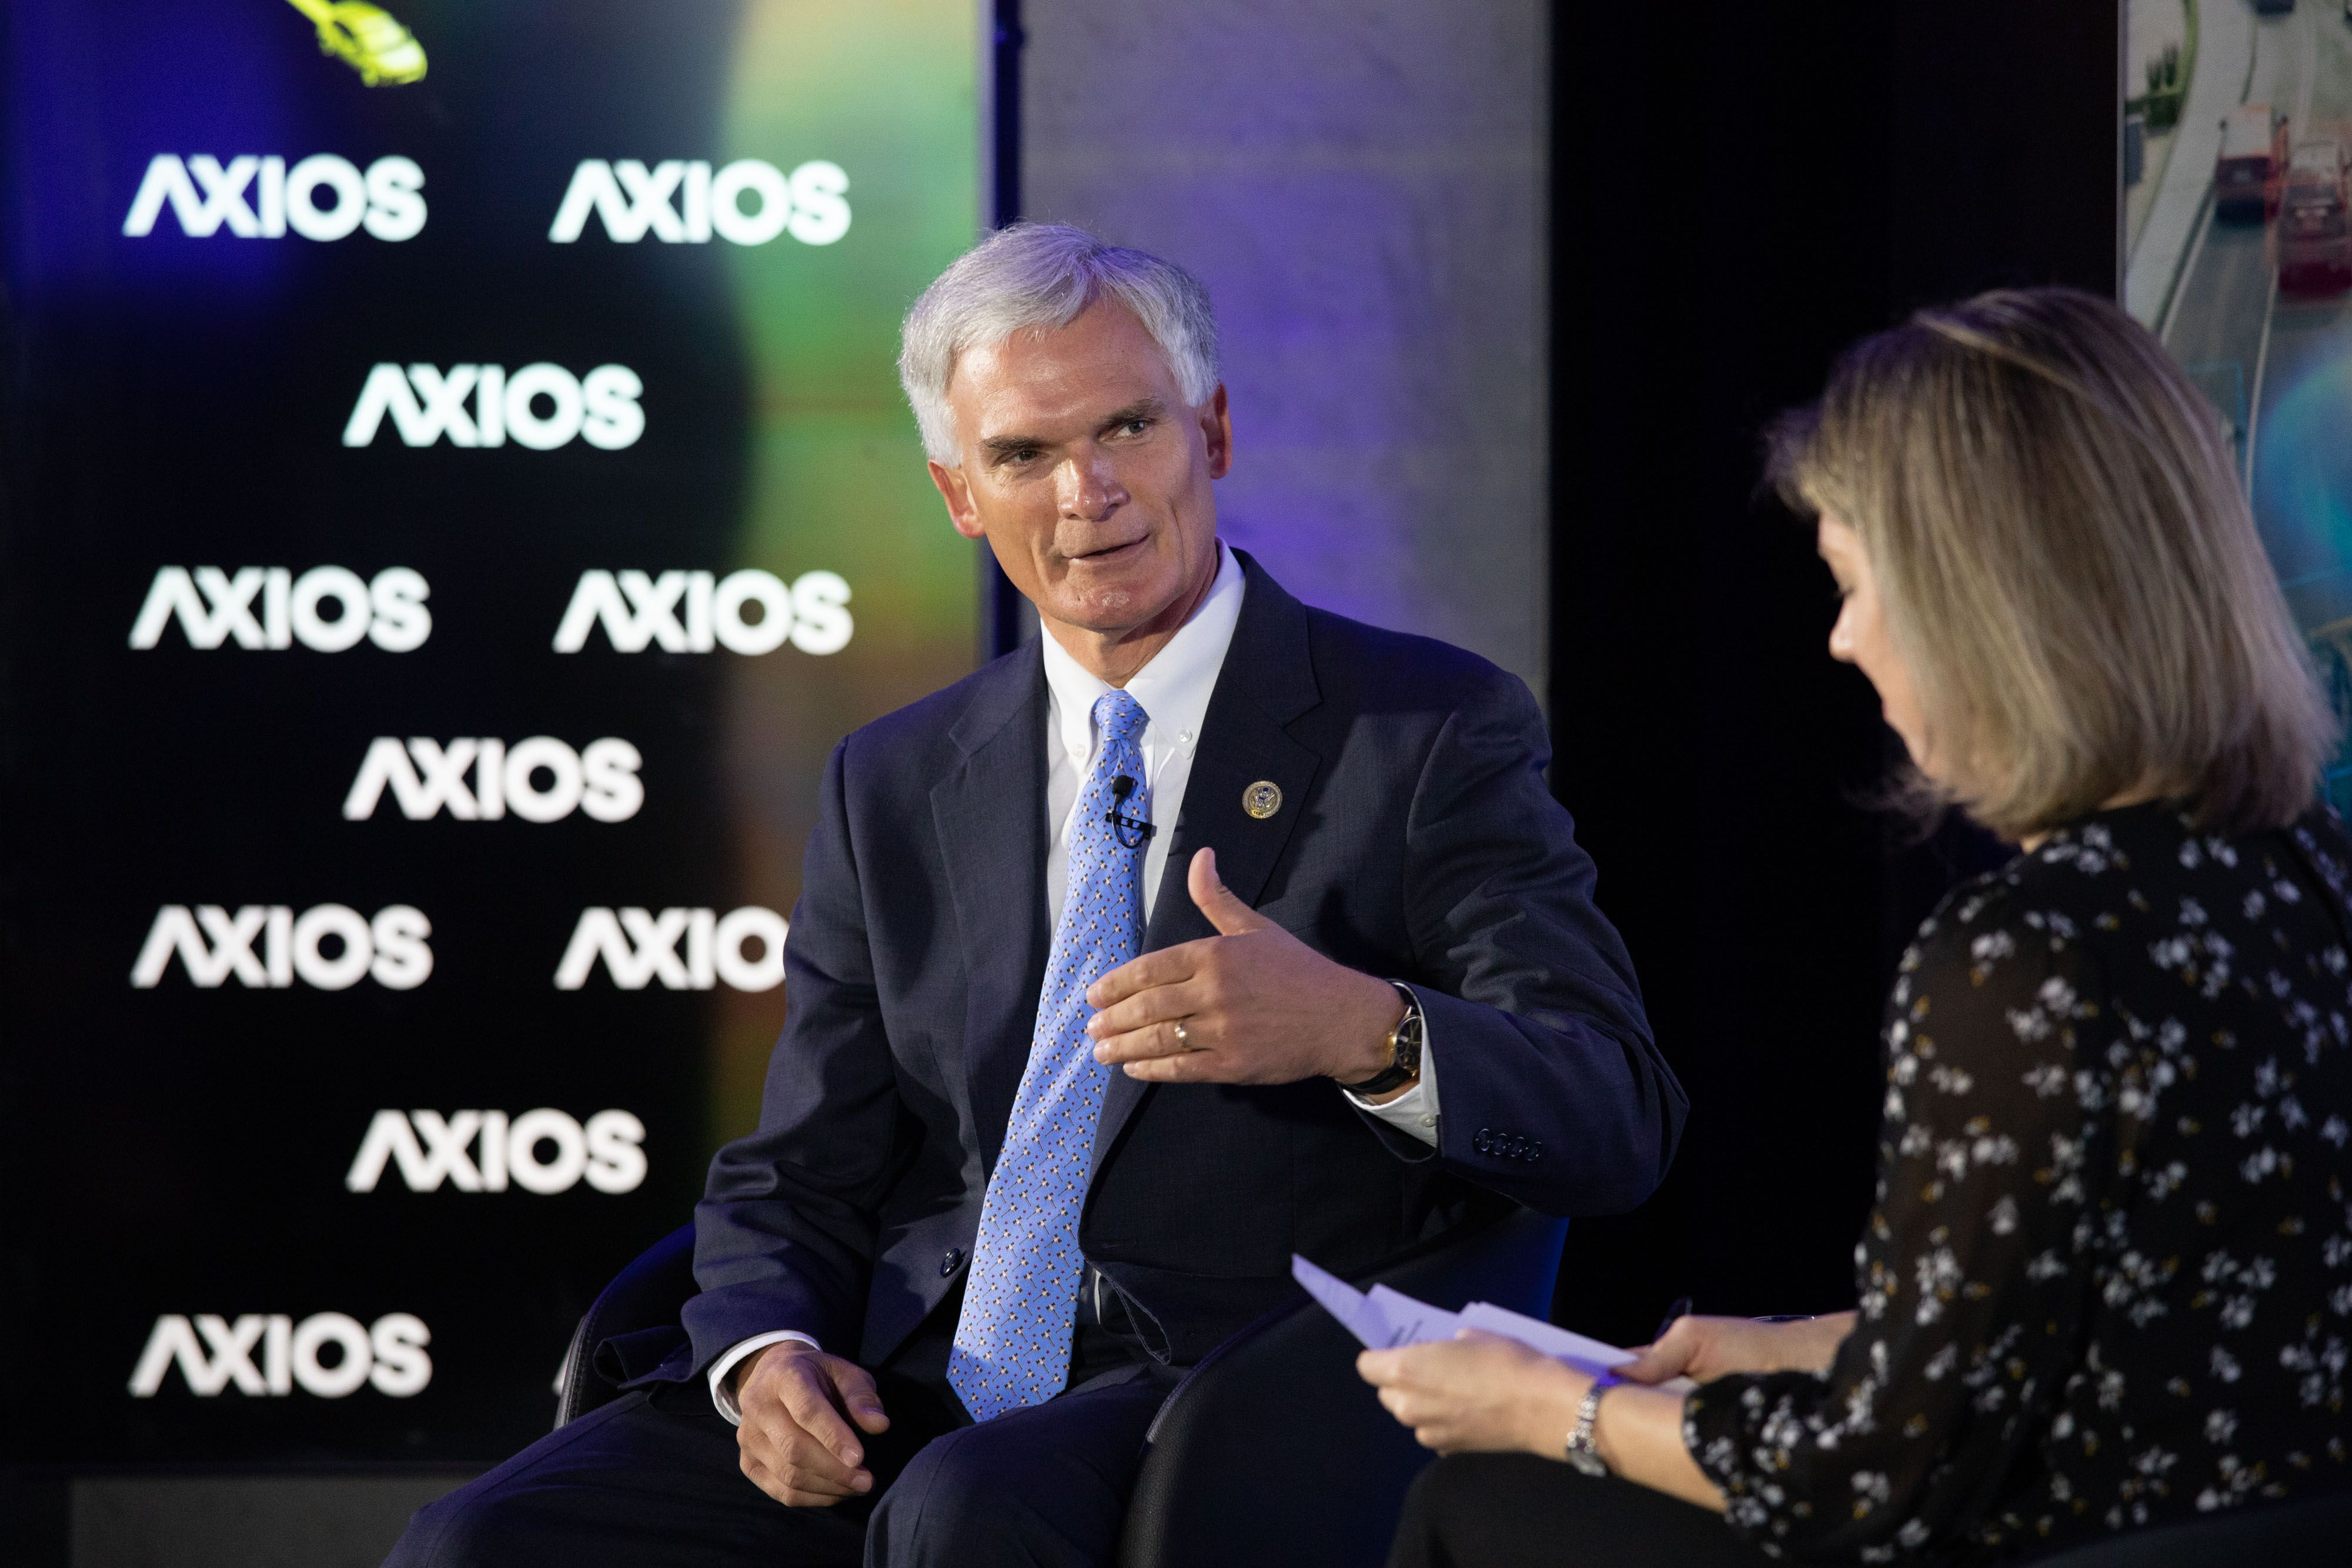 Rep. Robert Latta on the Axios stage